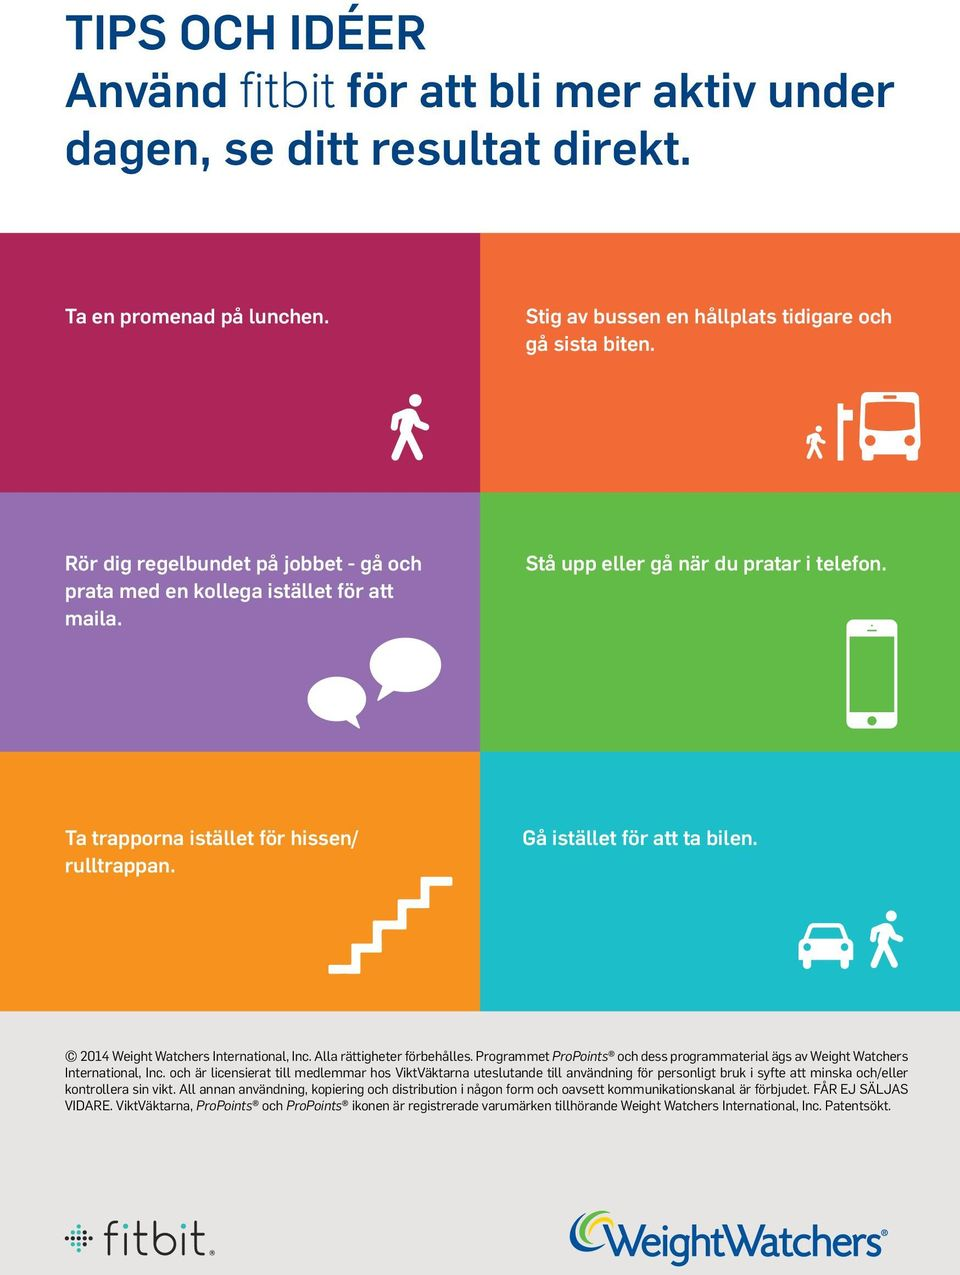 Gå istället för att ta bilen. 2014 Weight Watchers International, Inc. Alla rättigheter förbehålles. Programmet ProPoints och dess programmaterial ägs av Weight Watchers International, Inc.